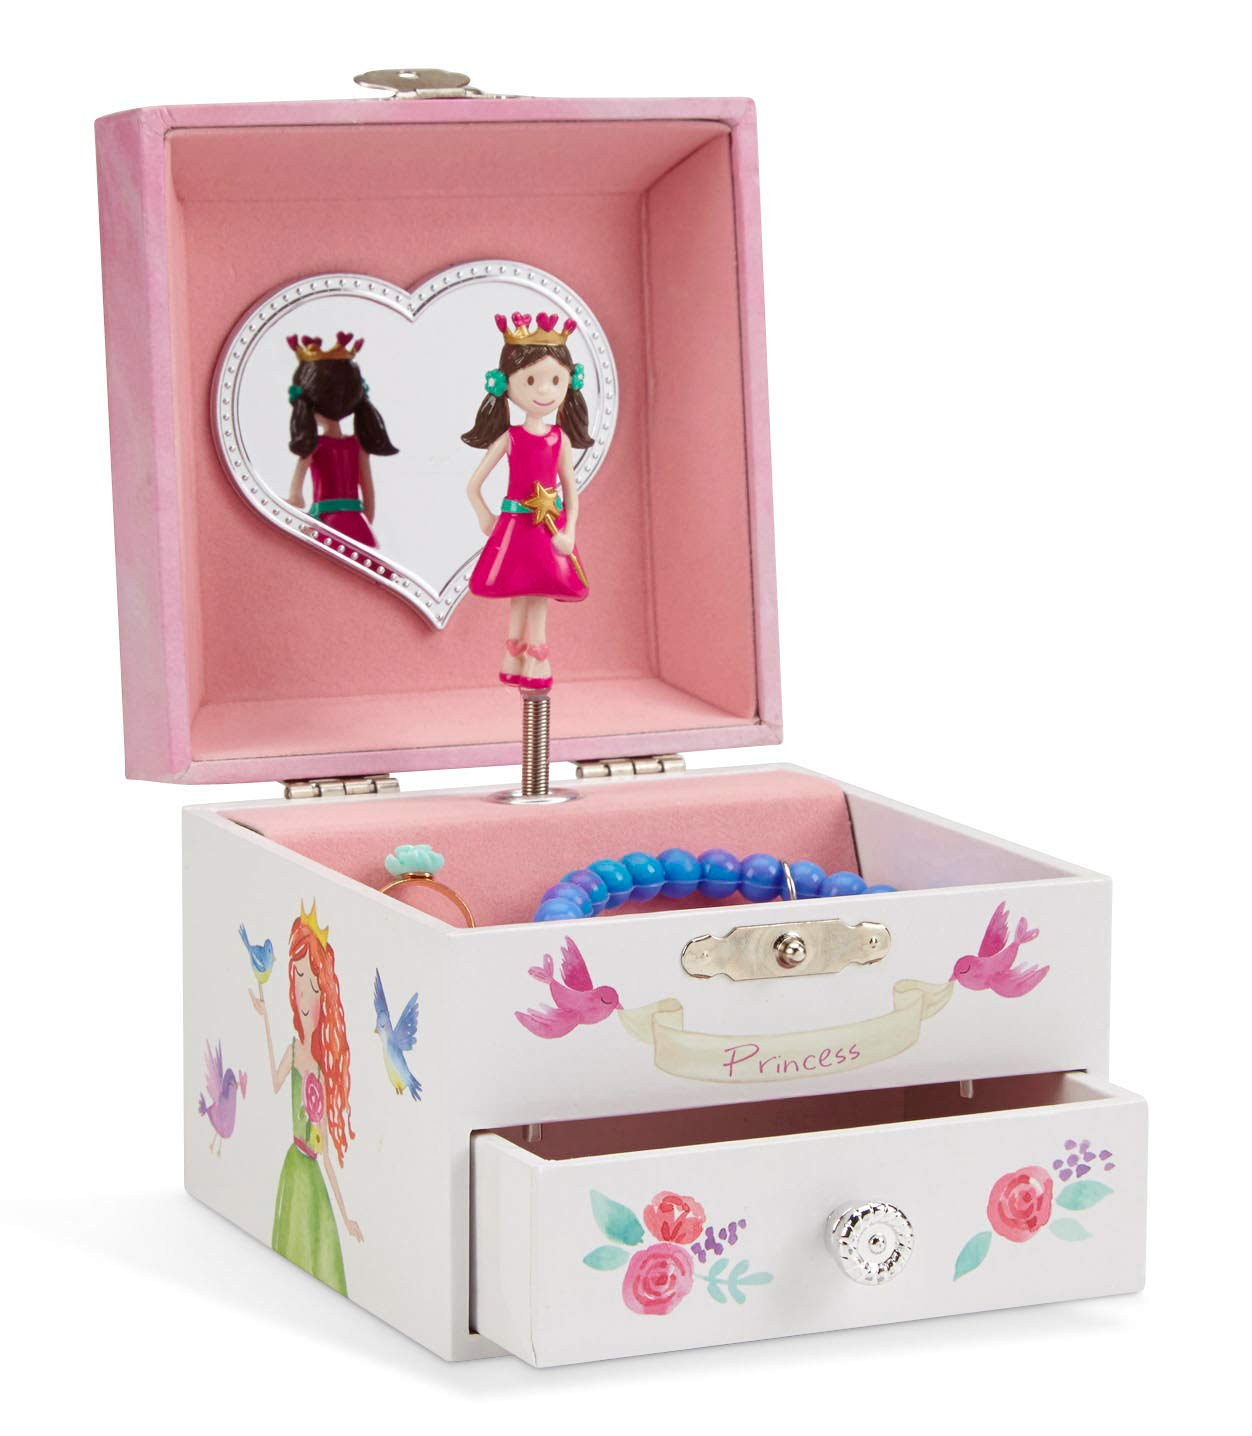 Jewelkeeper Unicorn Musical Jewelry Box, Fairy Princess Castle and Hearts Design with Pullout Drawer, Dance of The Sugar Plum Fairy Tune